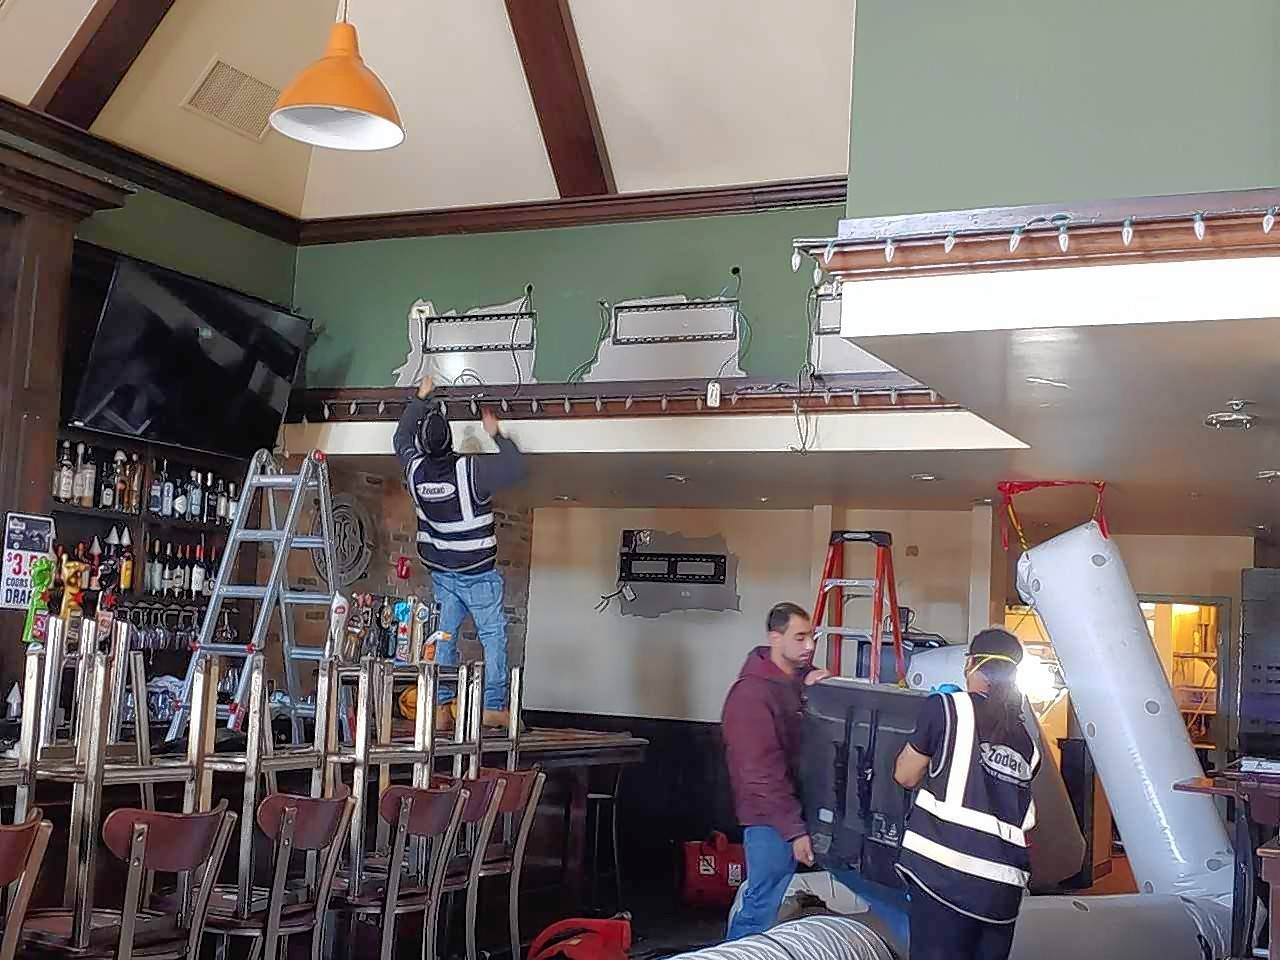 Work continues at Durty Nellie's in downtown Palatine in the wake of a fire in the kitchen last month that caused extensive smoke and water damage. The bar is getting help from two competitors in town so it can reopen while work continues.